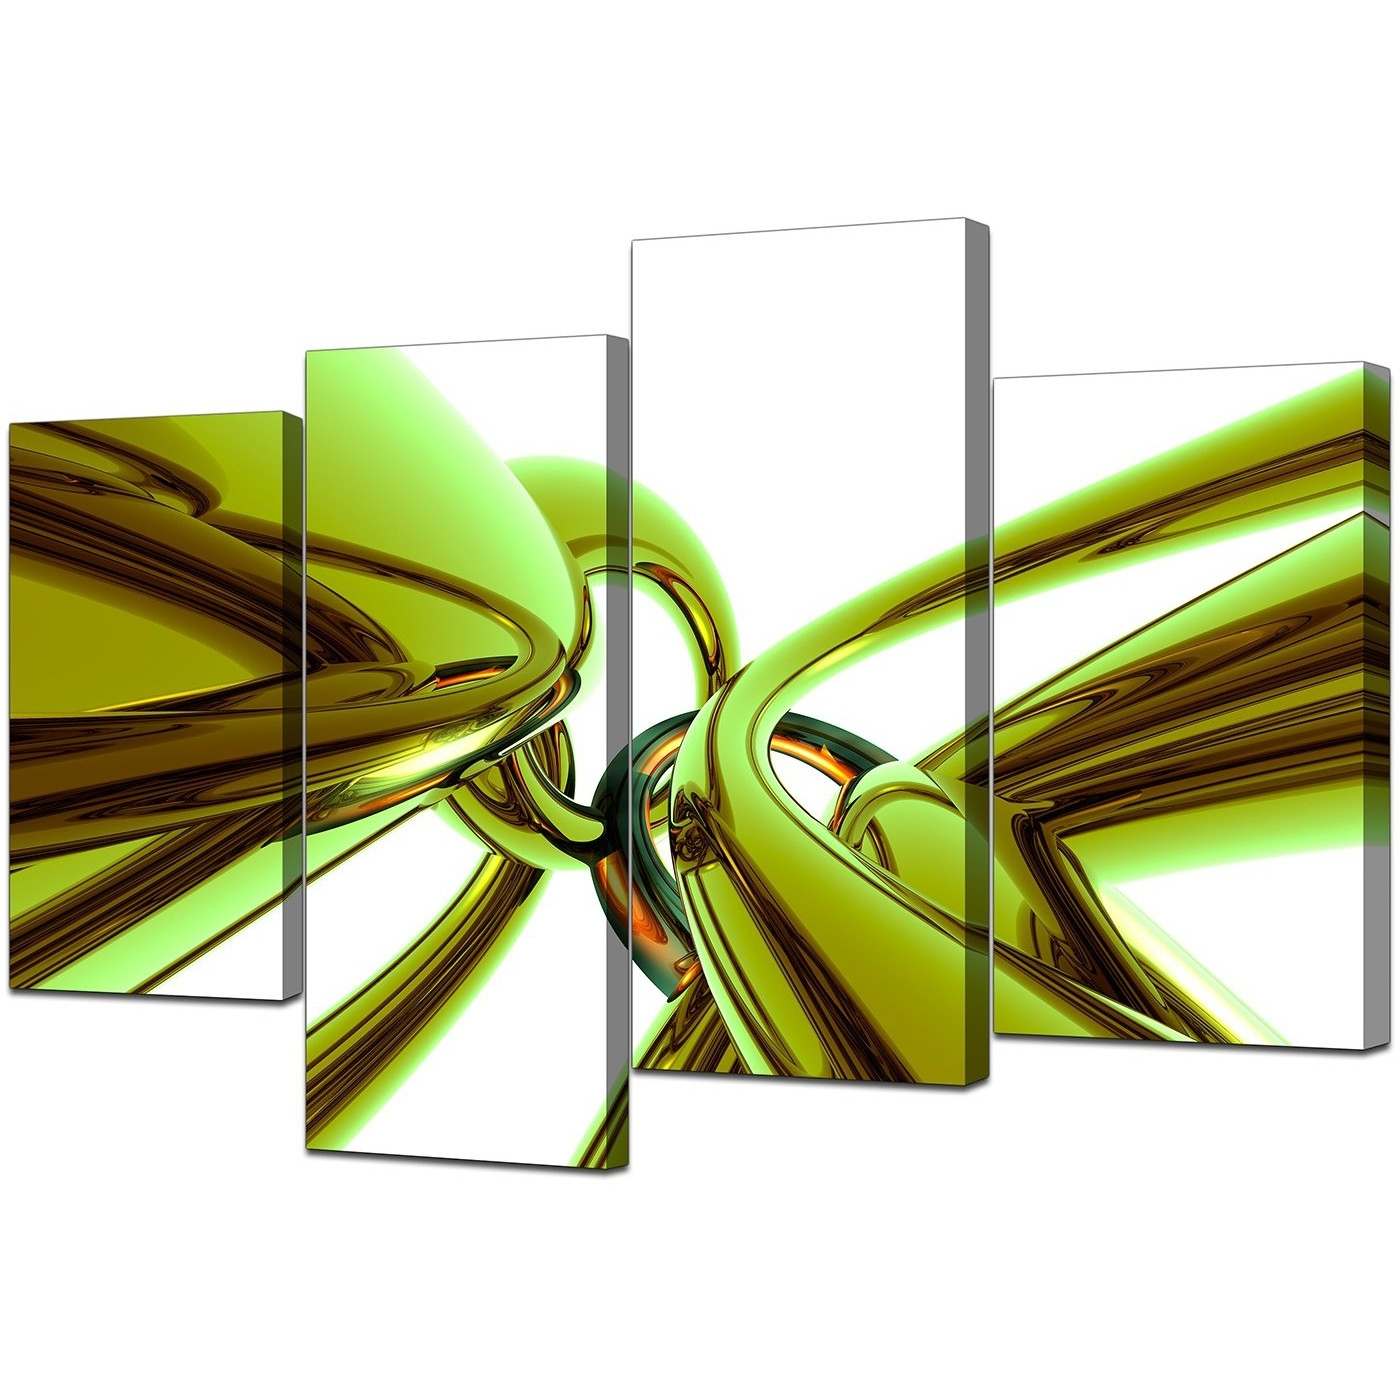 Large Green Wall Art Inside Famous Abstract Canvas Wall Art In Green For Your Living Room – Set Of  (View 7 of 15)